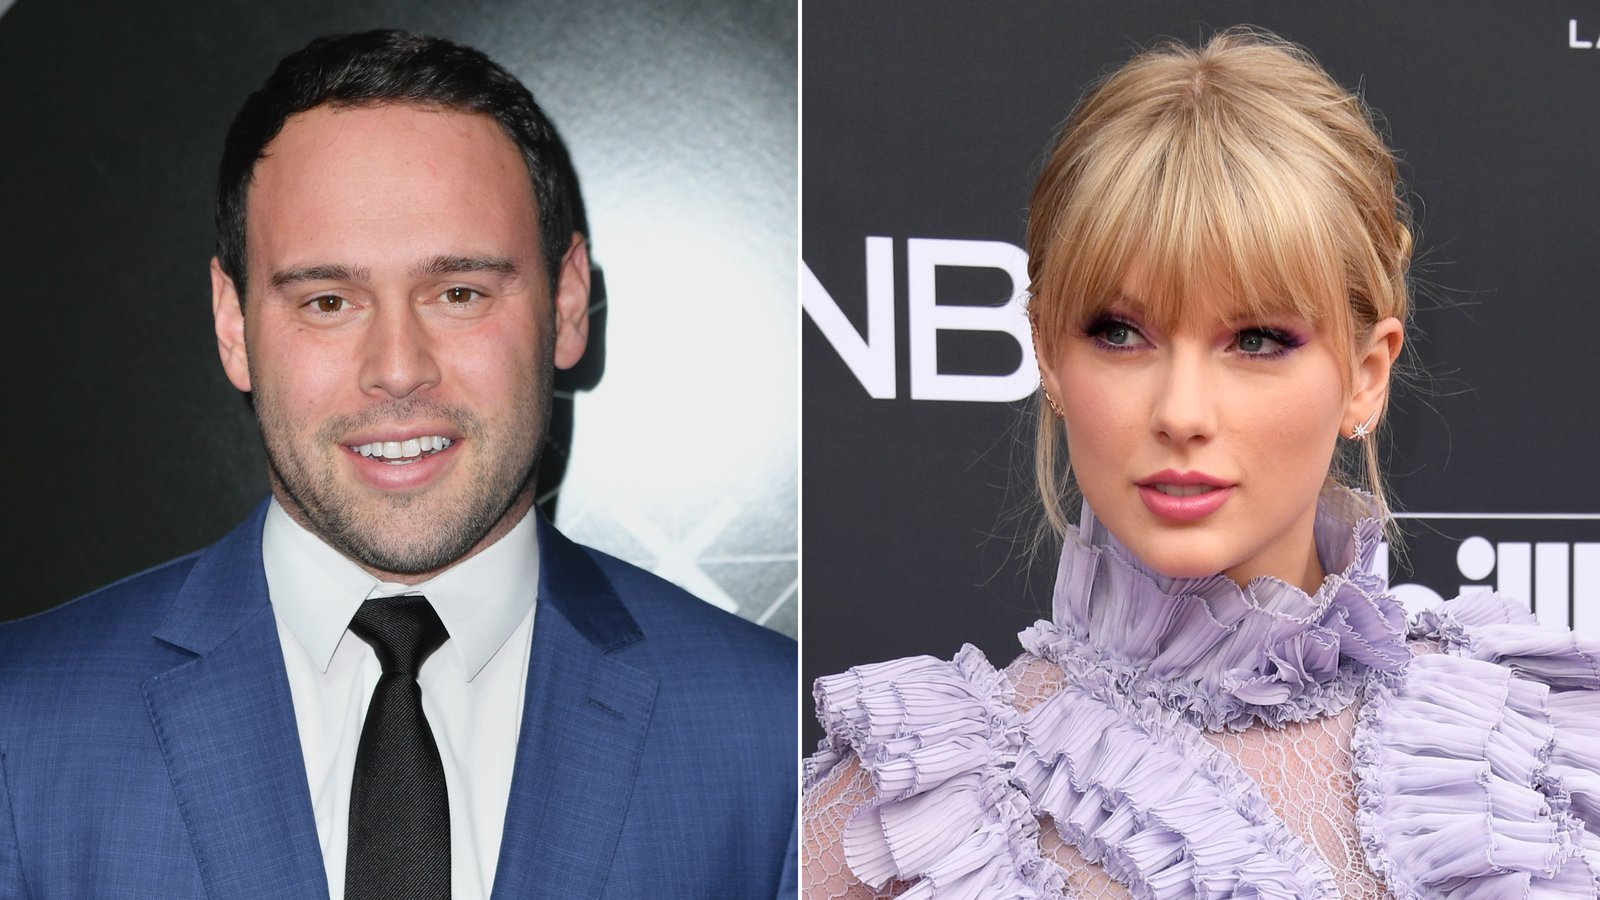 Scooter Braun makes public plea to Taylor Swift after receiving death threats